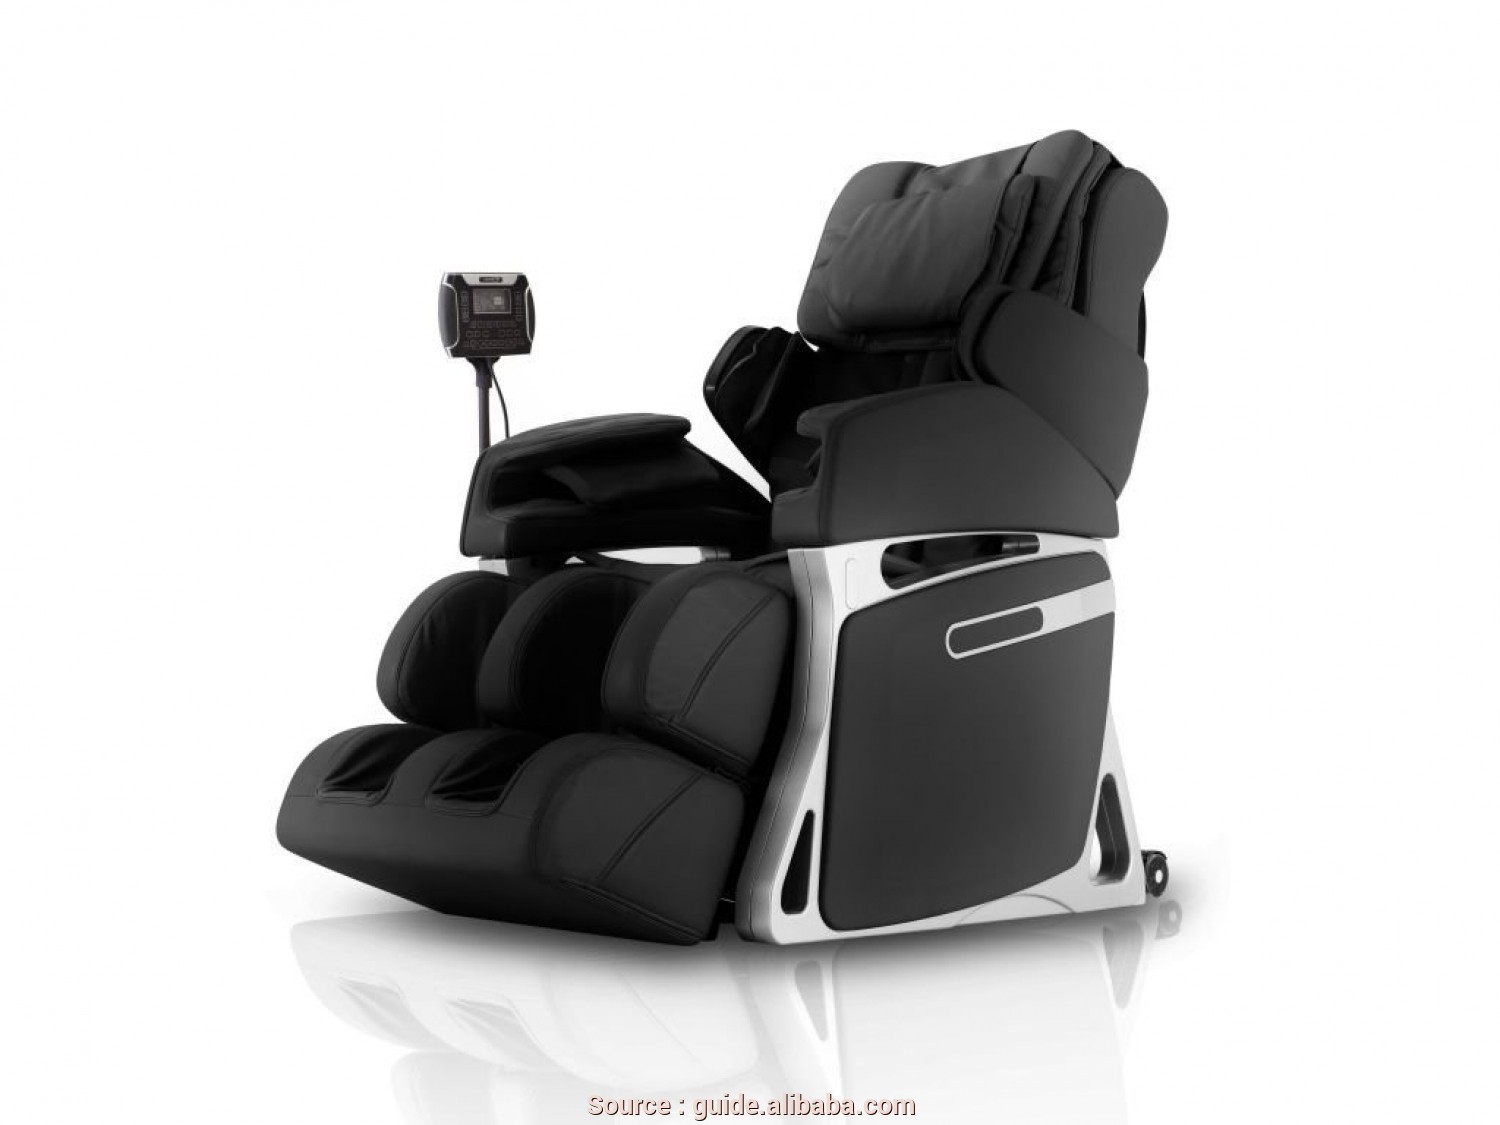 Divano Roma Furniture Relax Reclining Massage Chair, Buono Get Quotations · Fujiiryoki FJ-4800BLACK Model FJ-4800, Fuji Cyber-Relax Massage Chair